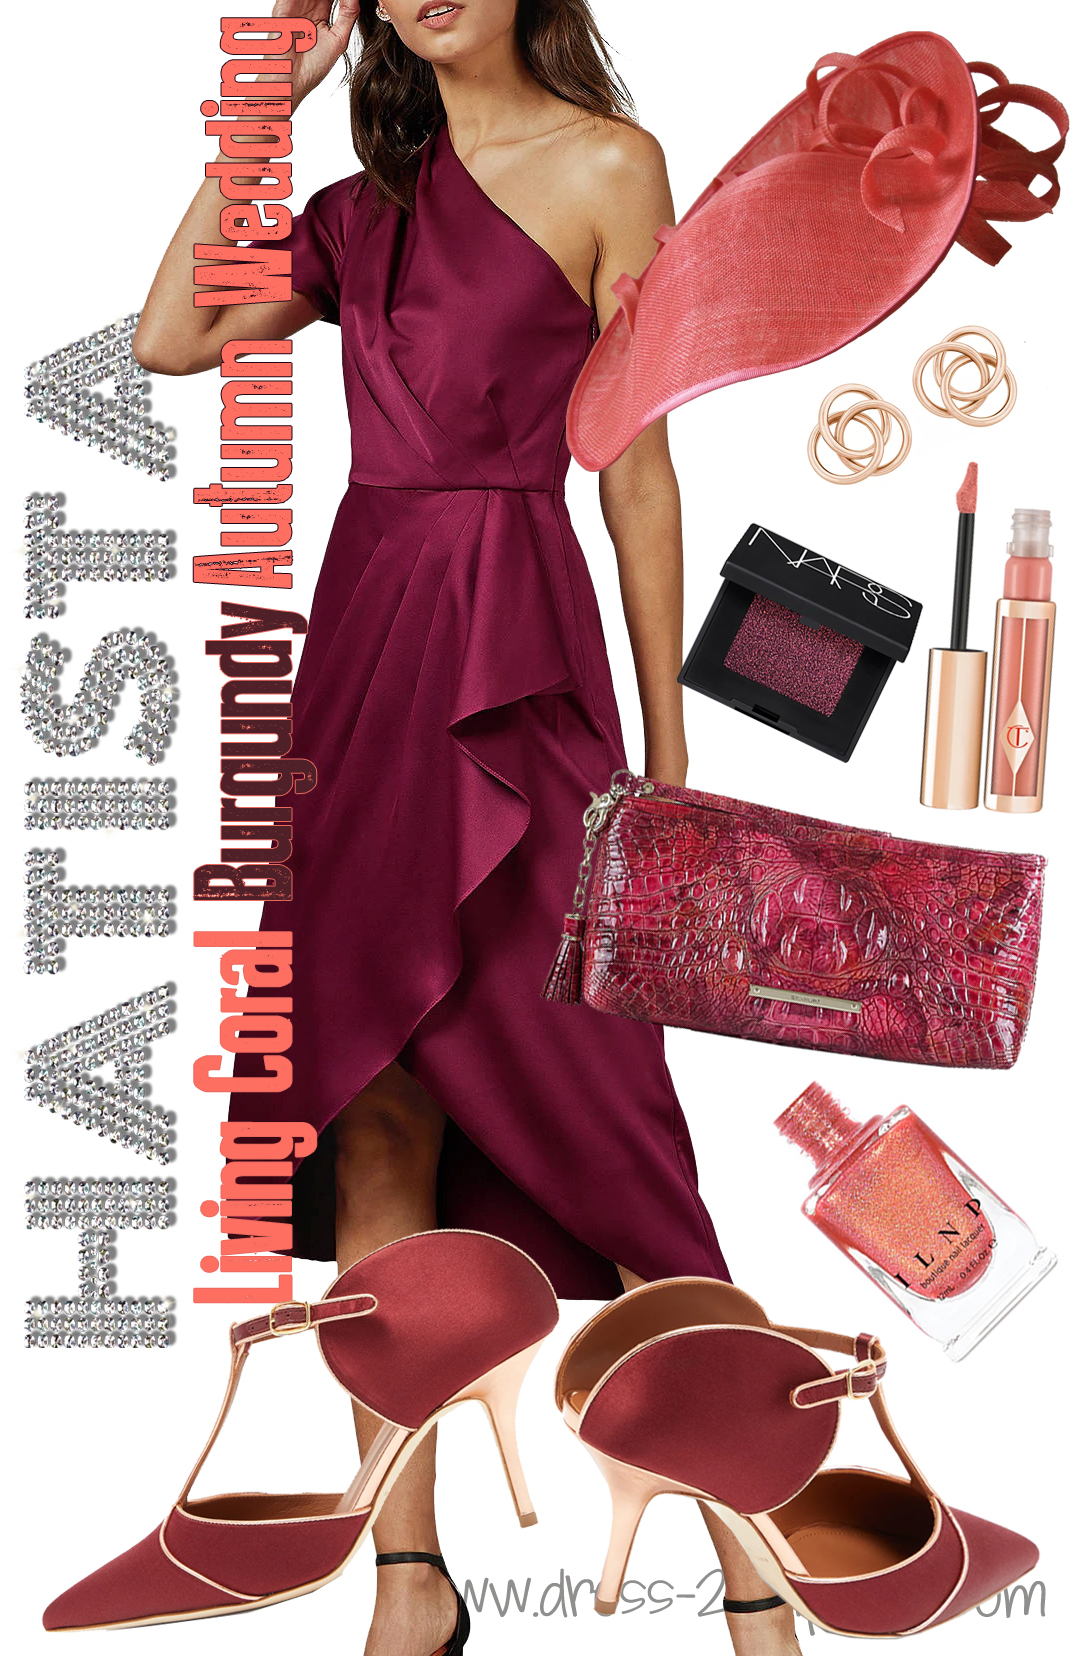 How to Wear Coral, What to wear with Burgundy, What colours go with Coral. What to wear with a Burgundy Dress. Autumn Wedding Guest Outfits 2020. Autumn Outfits with Living Coral. Pantone Color of the Year 2020, Living Coral. Winter wedding guest outfits. What to wear to a late winter wedding #livingcoral